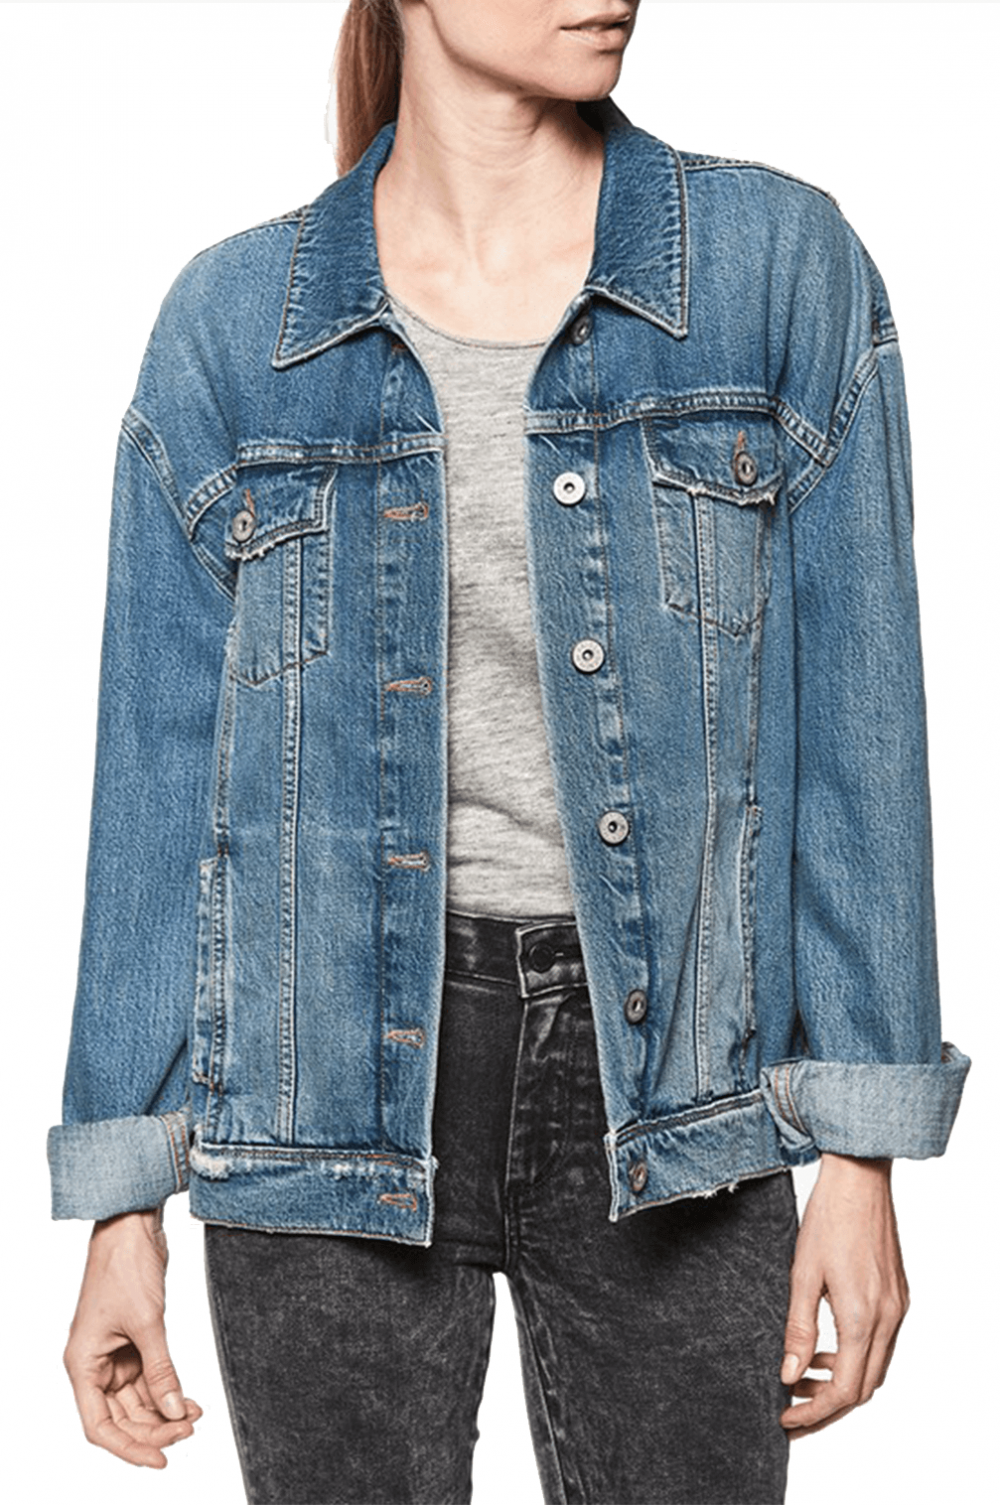 A Denim Jacket -